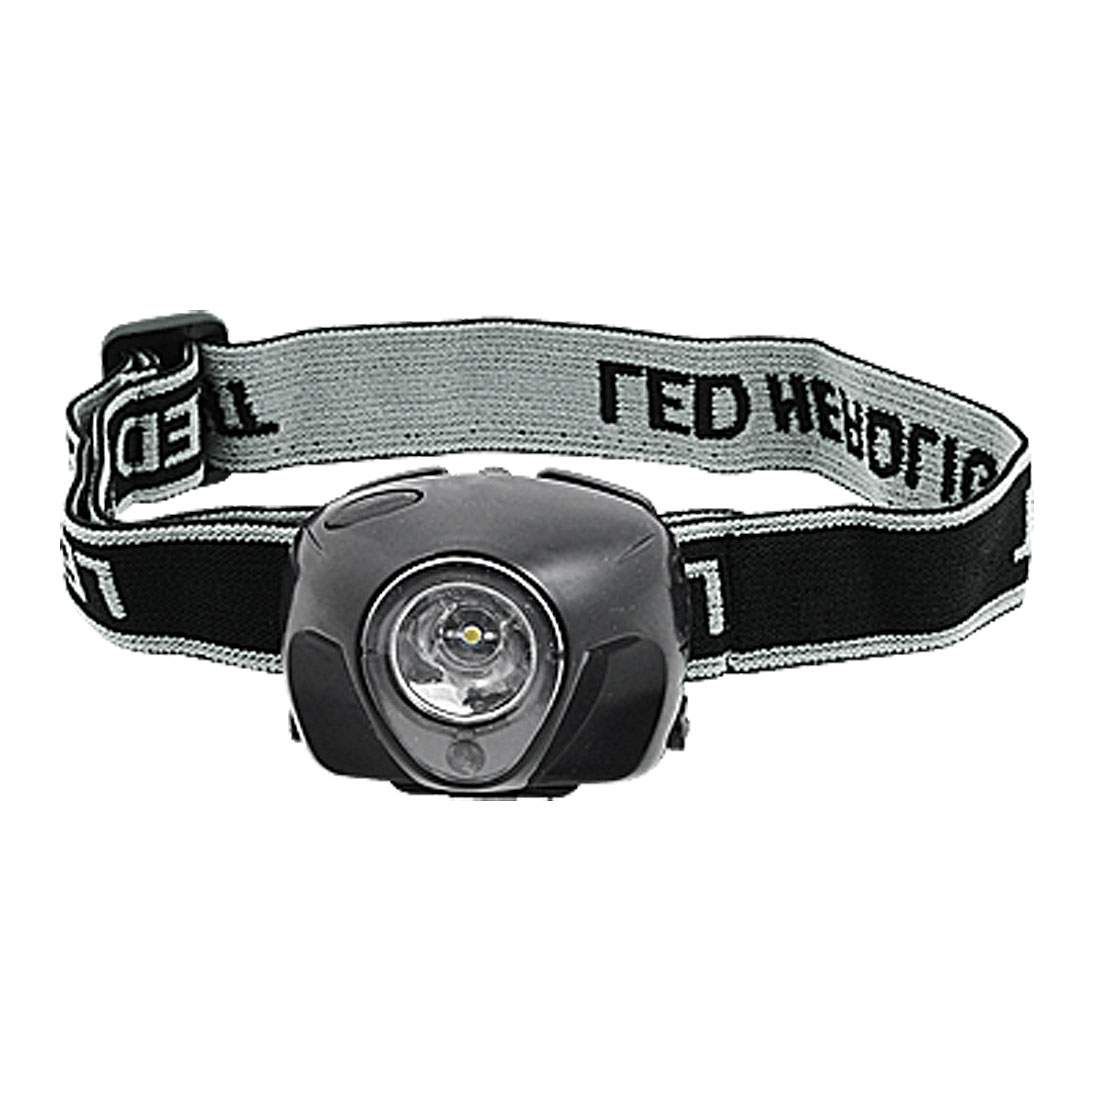 1 LED Battery Powered Adjustable Strap Headlamp Headlight Black